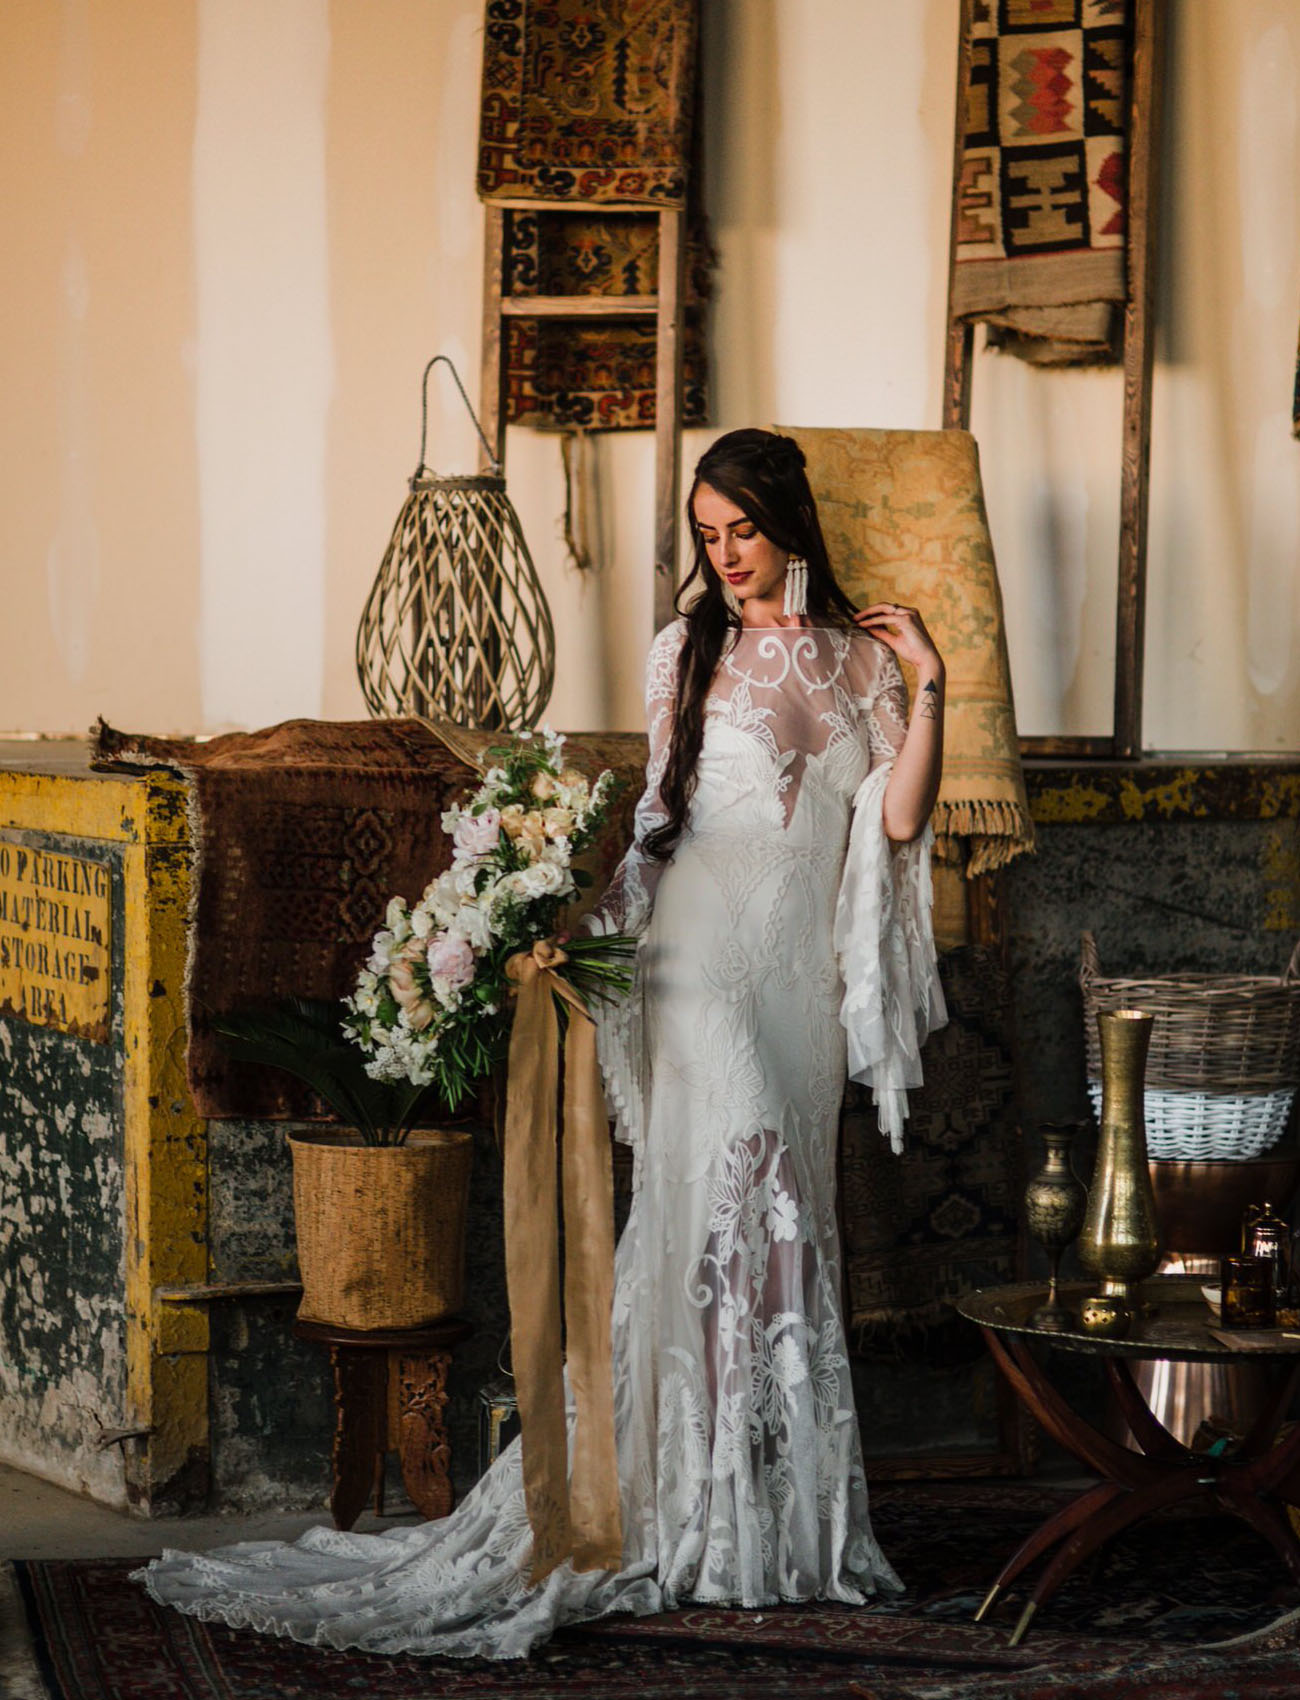 The bride was wearing a fantastic Rue De Seine wedding dress with a lace overlay and bell sleeves